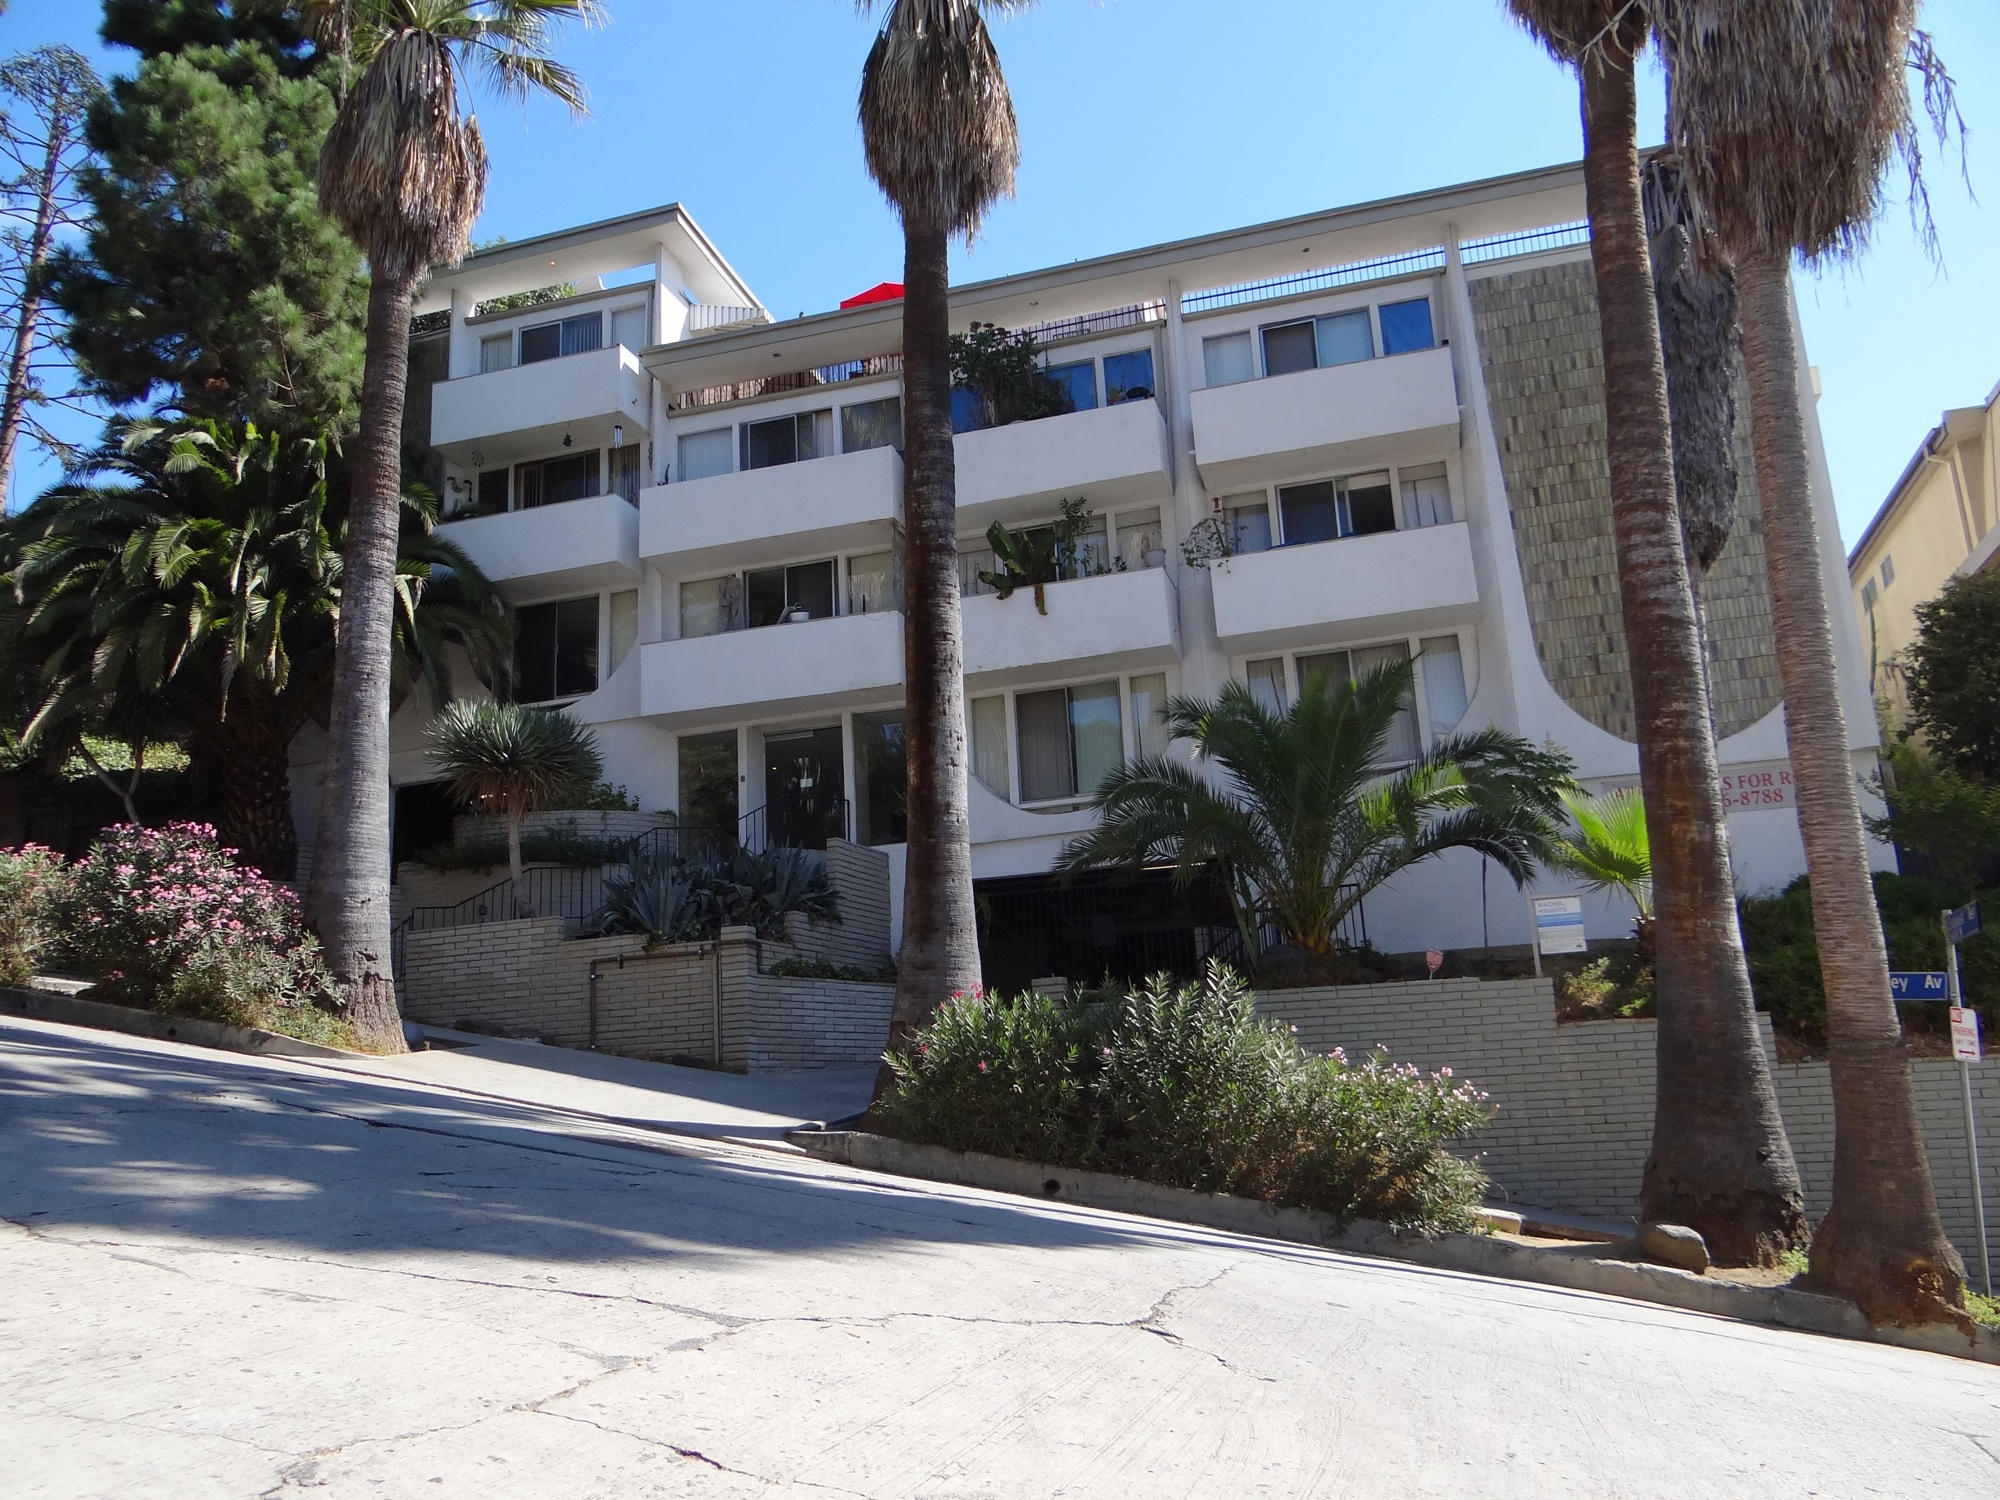 Hollywood Hills 1 Bedroom Apartment Jpl Vacation Rentalsjpl Vacation Rentals